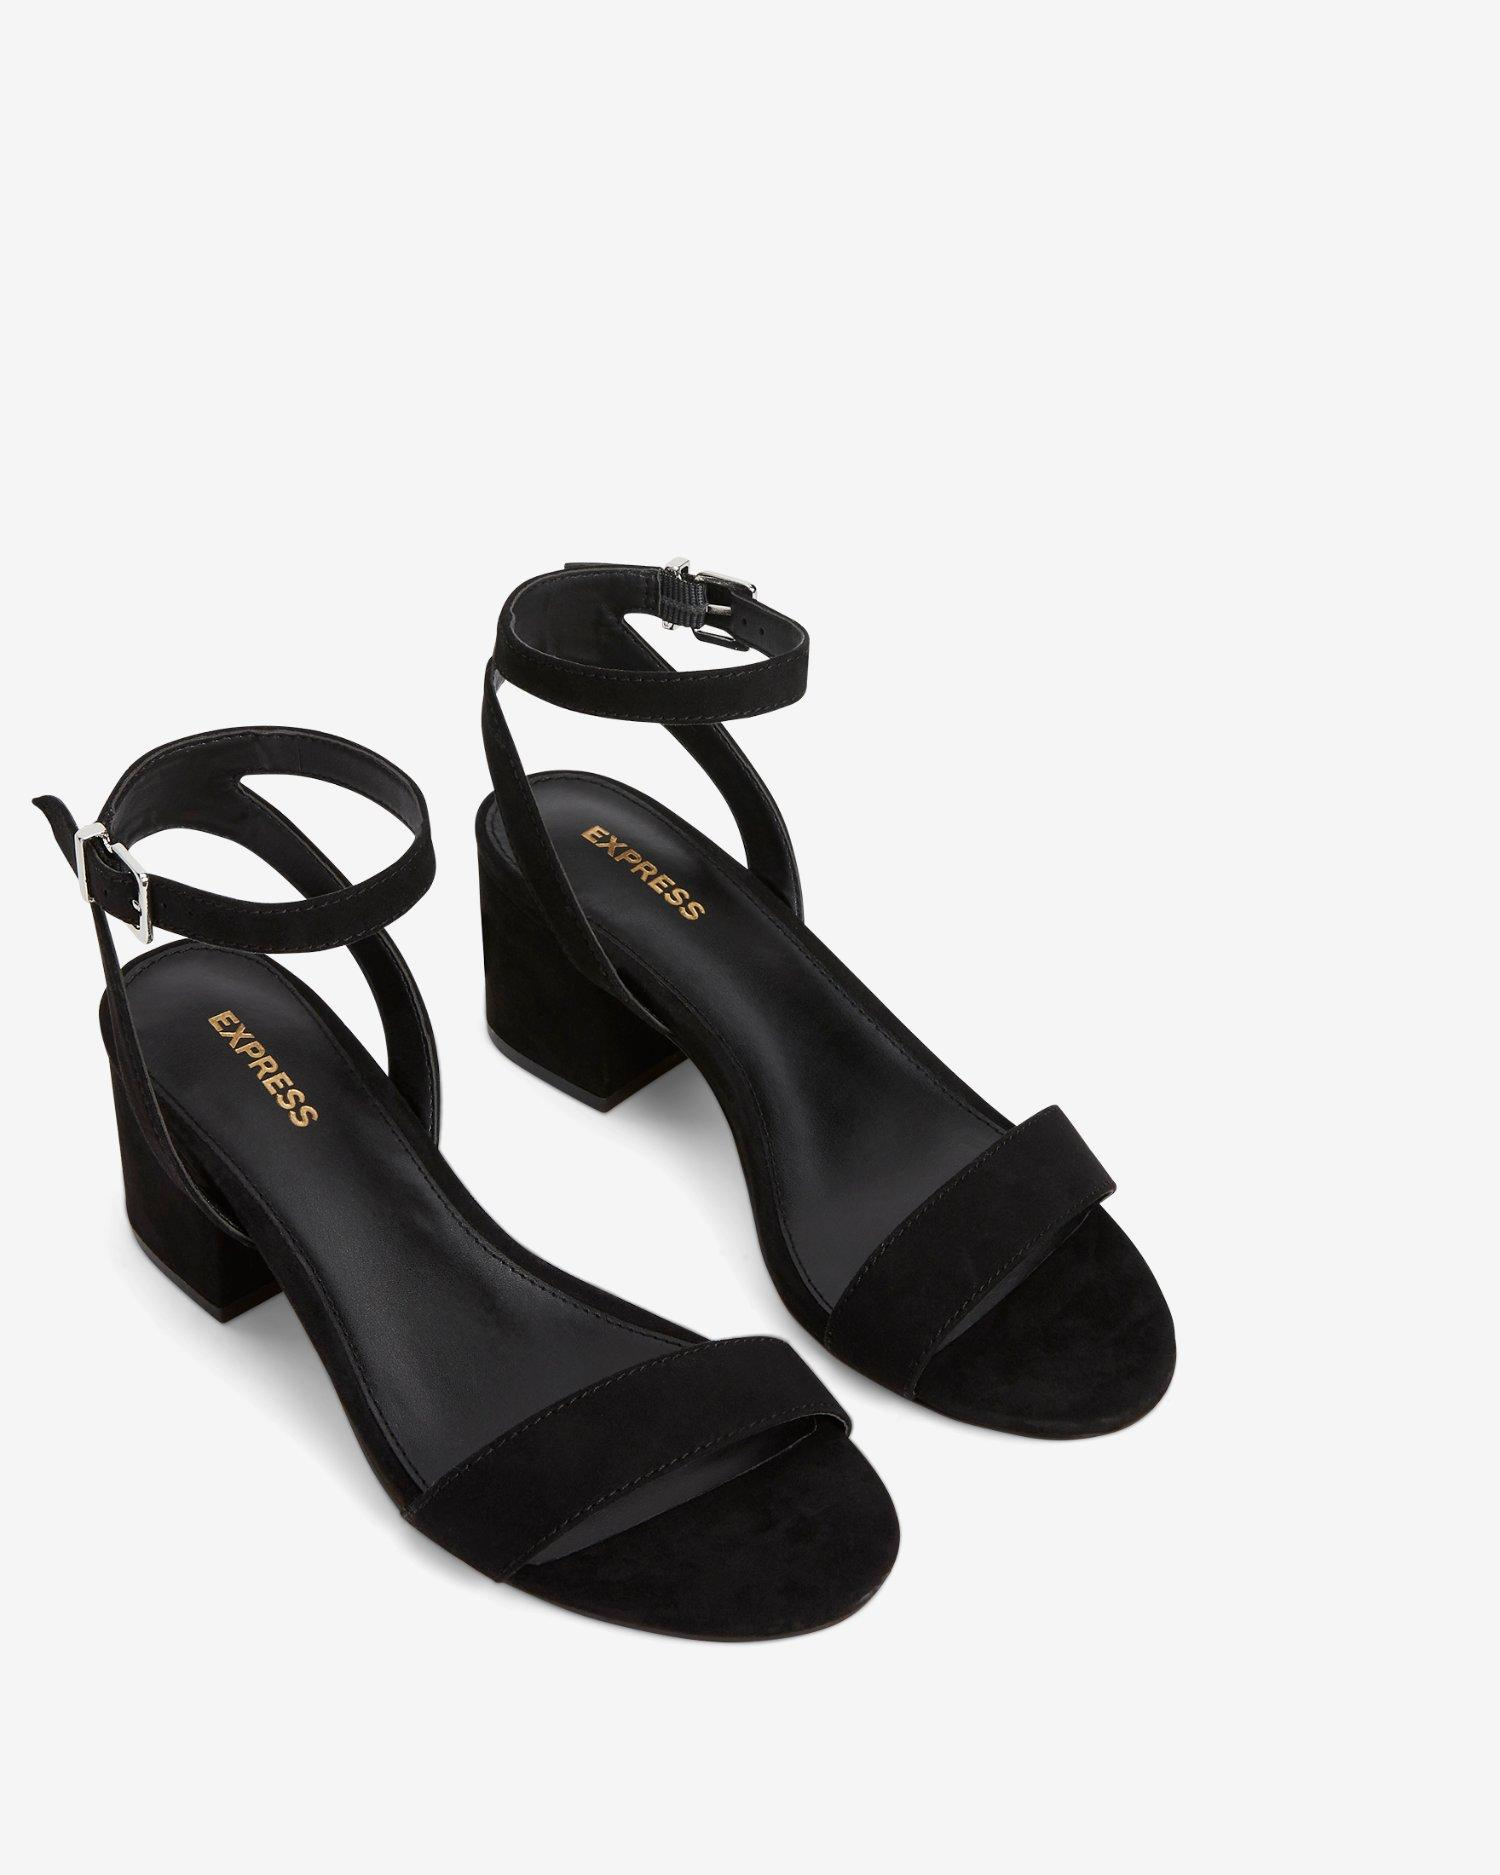 b2ee63fed5 Express Faux Suede Low Block Heeled Sandals Black in Black - Save 32% - Lyst